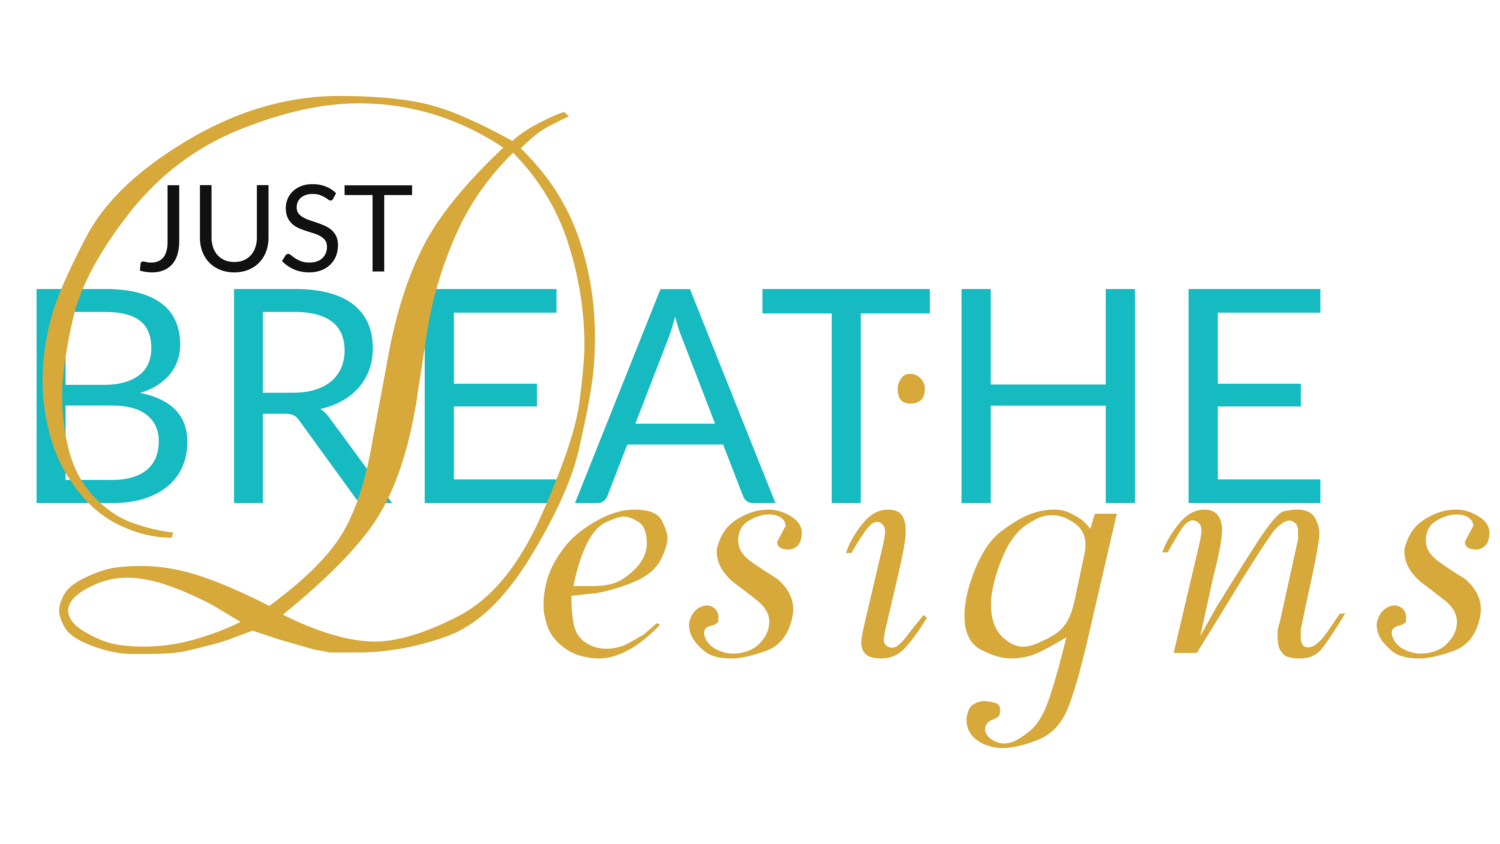 Just Breathe Designs